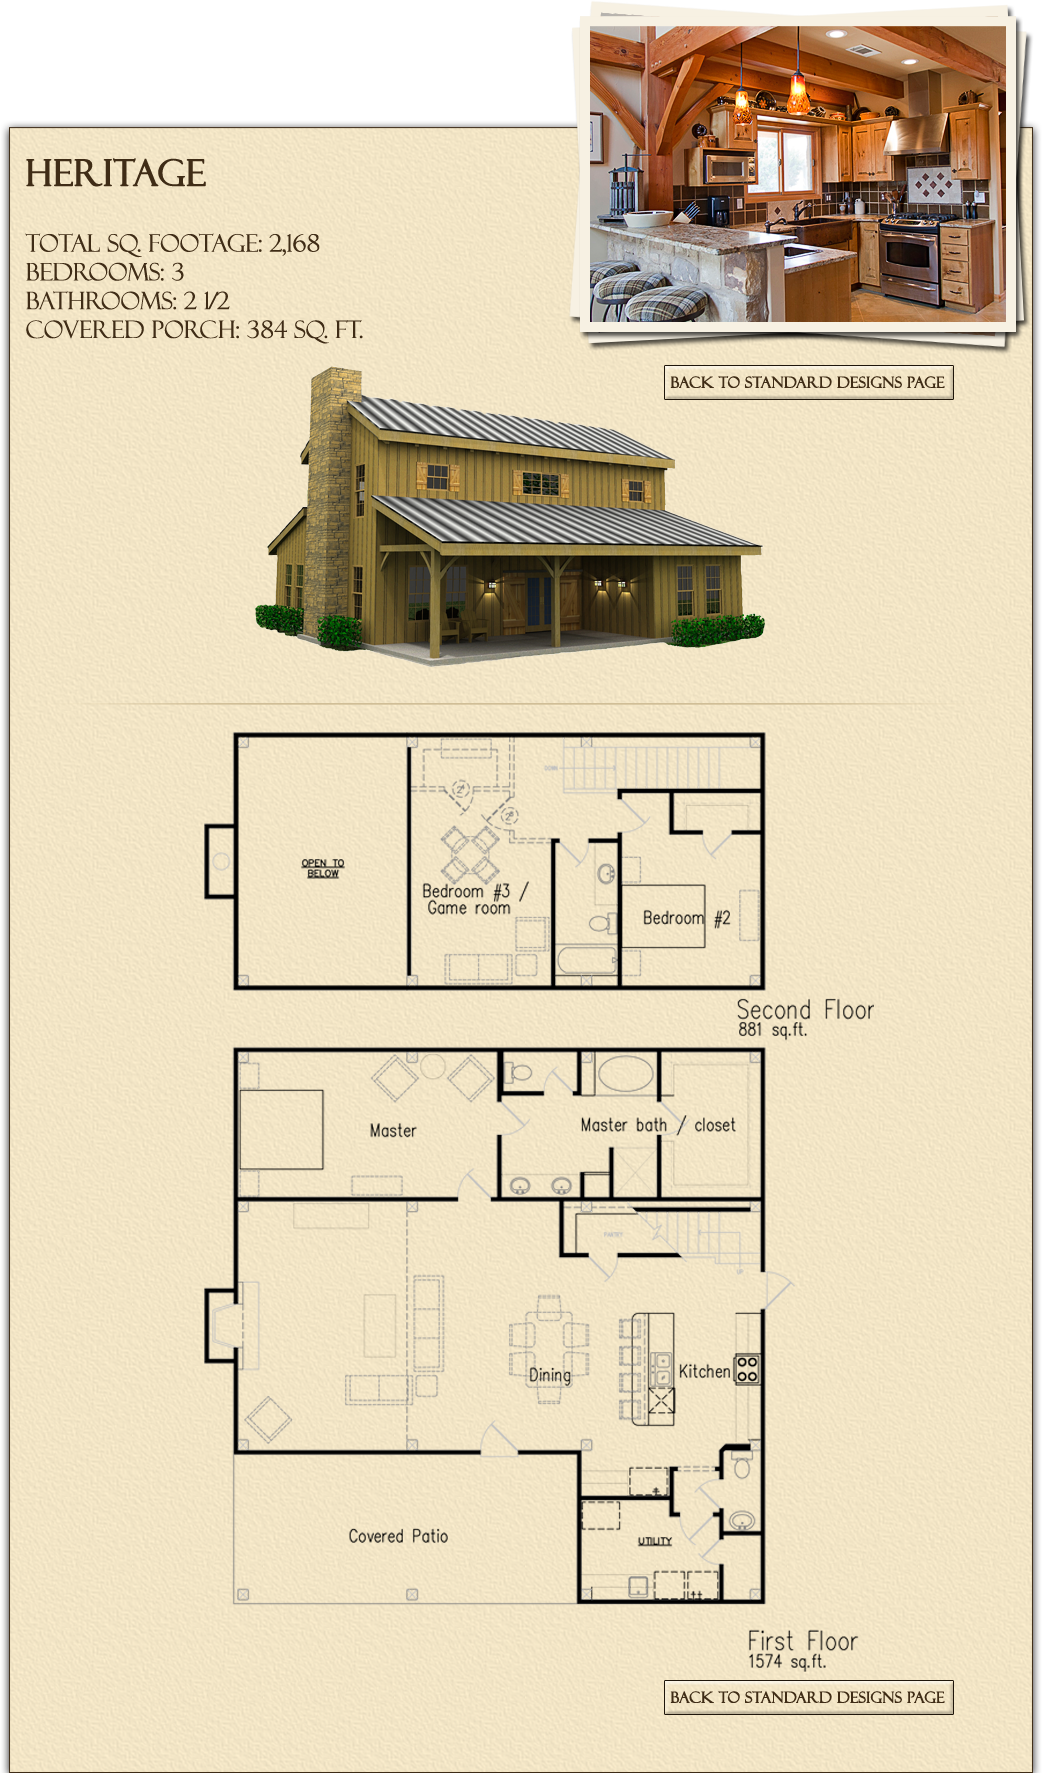 texas timber frames standard designs timber trusses frame house plans frame homes post and beam homes log house log home plans barn homes - Timber Frame Barn Home Plans